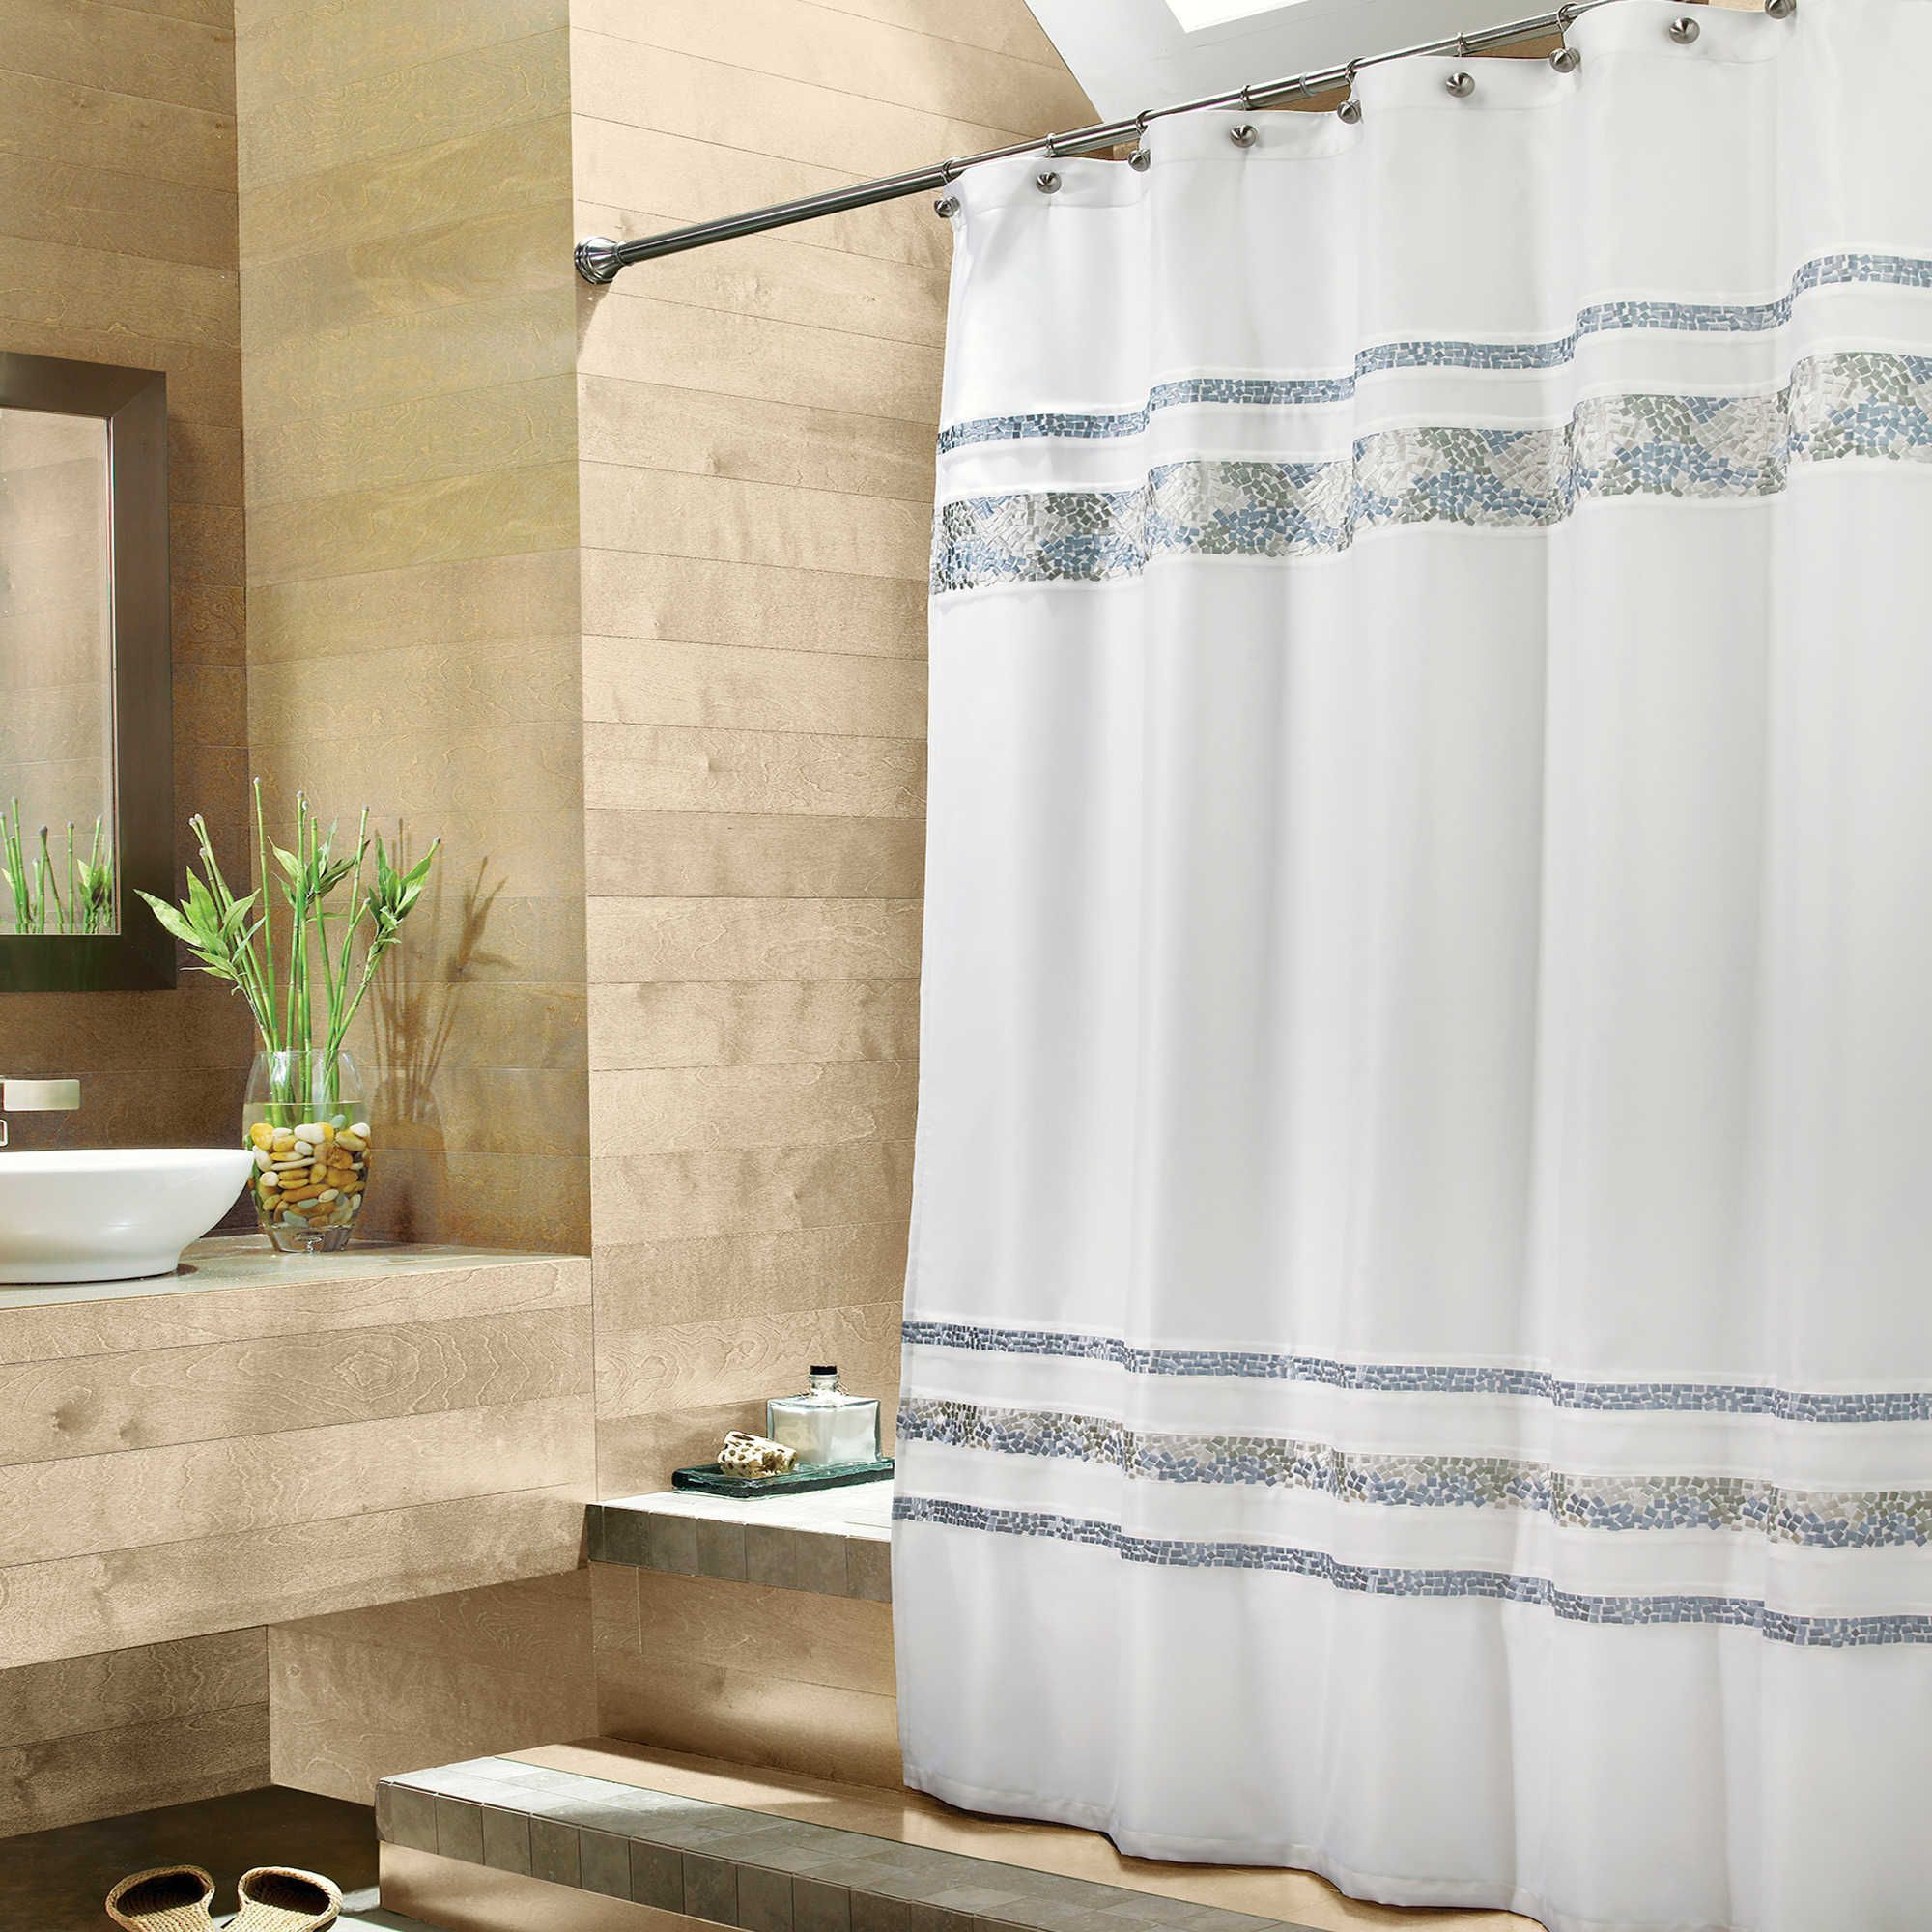 12 Elegant Designs Of How To Build Shower Curtains 84 Inches Long Fabric Shower Curtains Curtains Long Shower Curtains